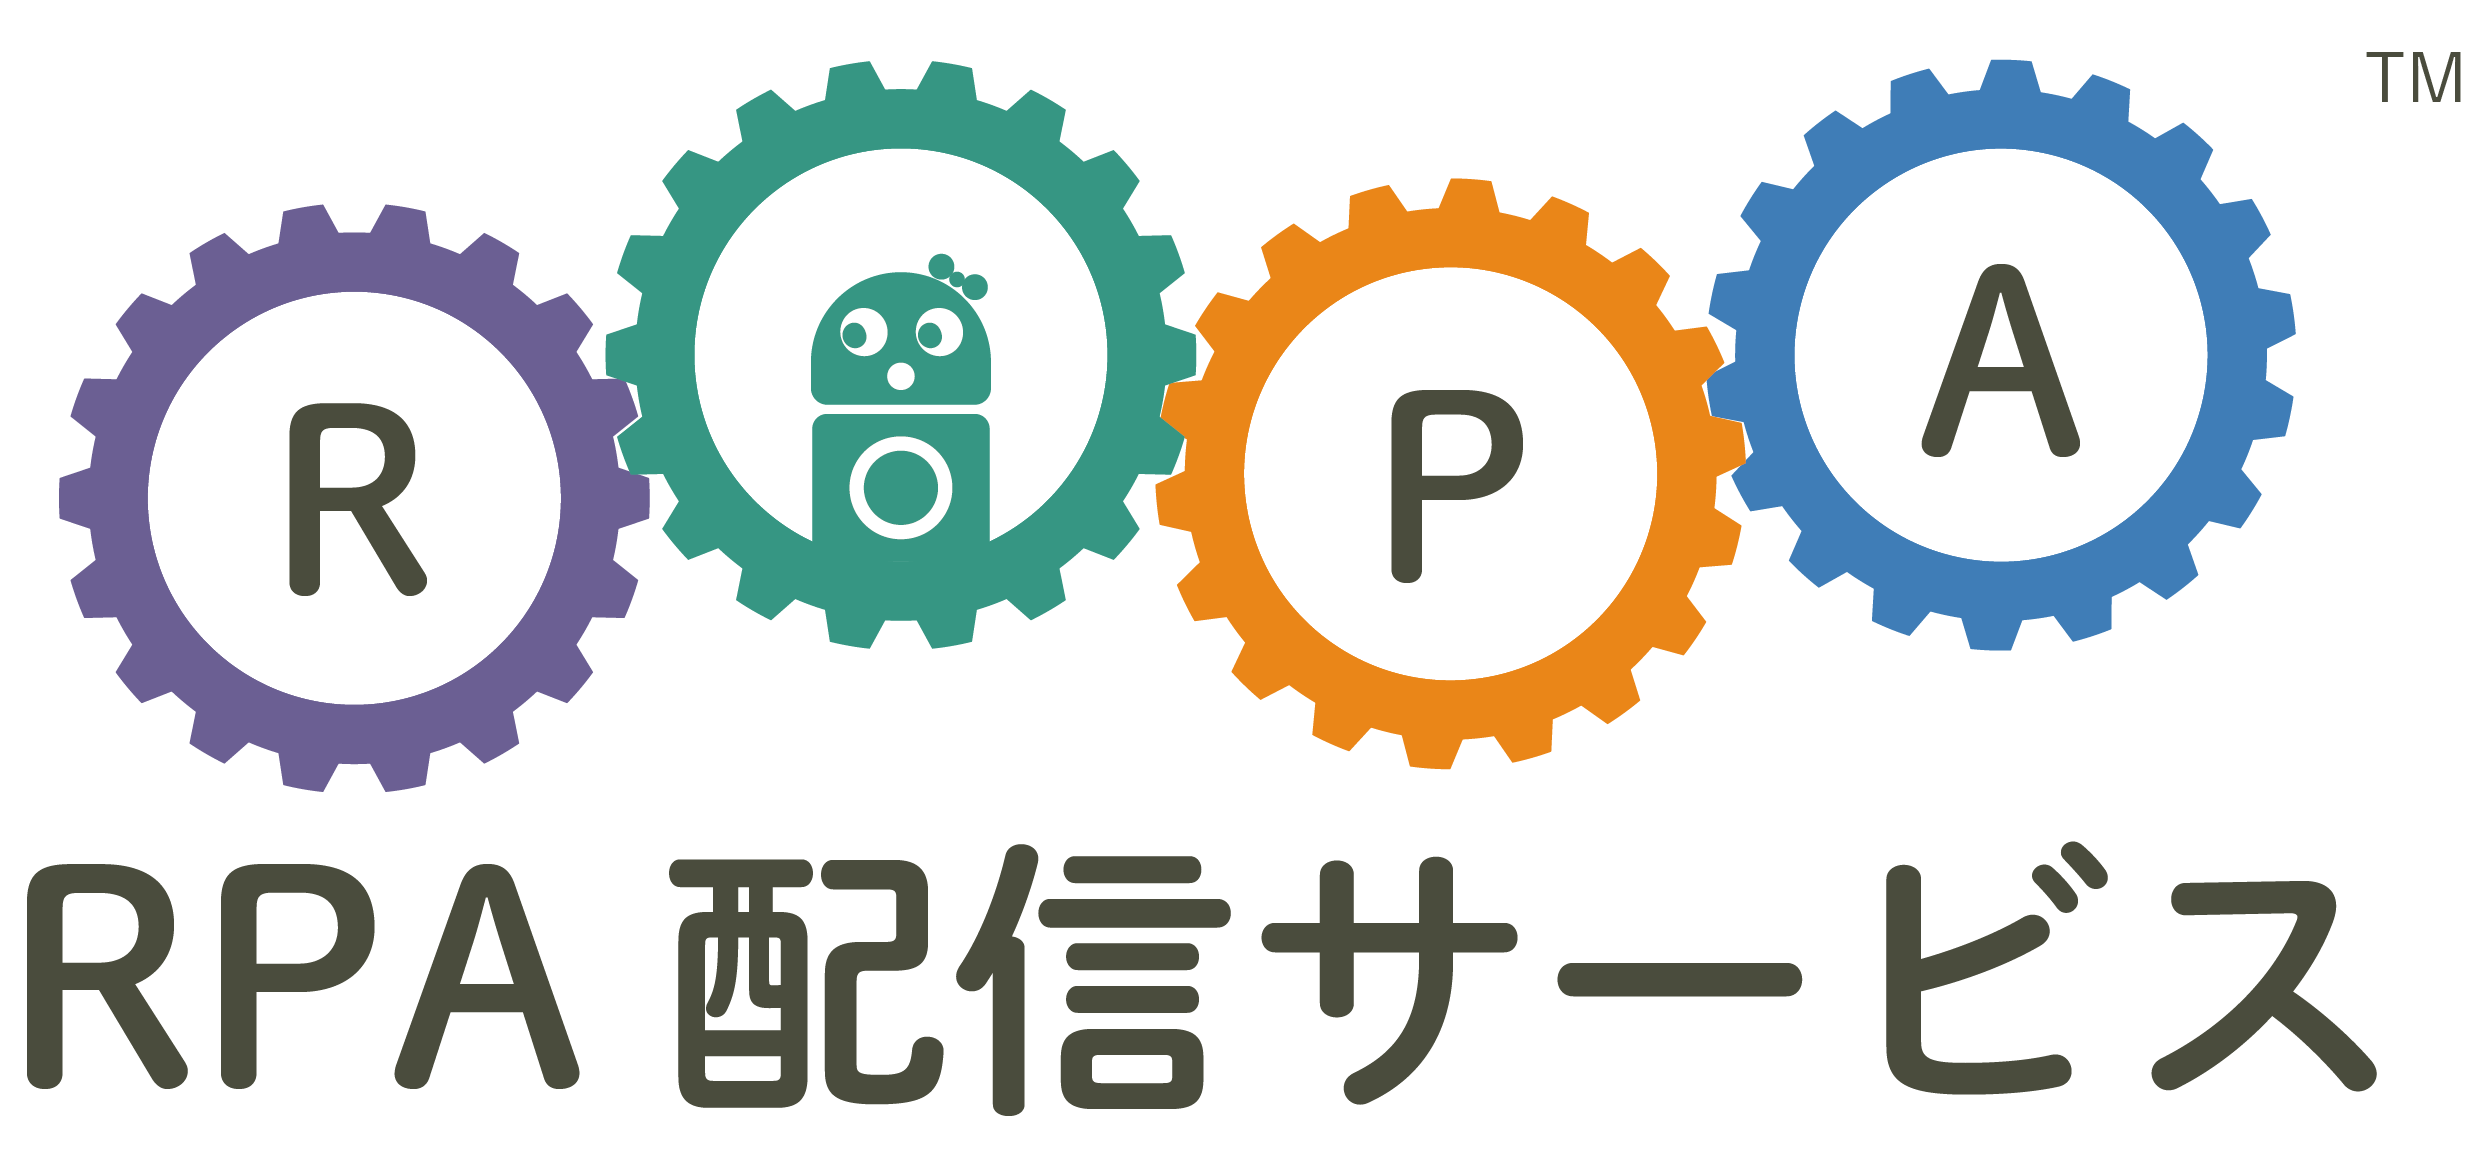 RPA配信サービス.png